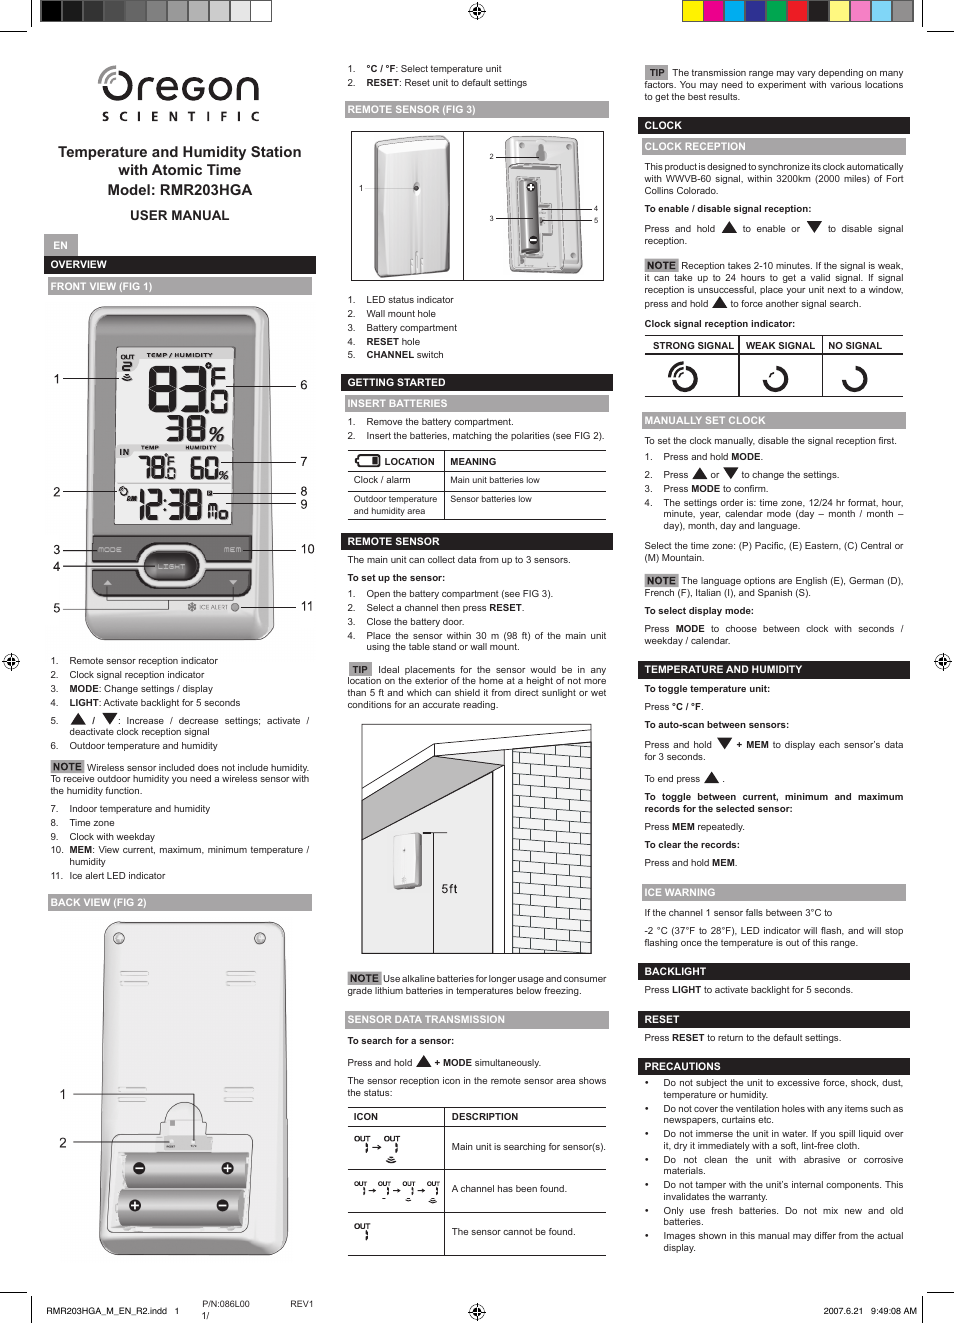 Oregon Scientific Rmr203hga User Manual 2 Pages